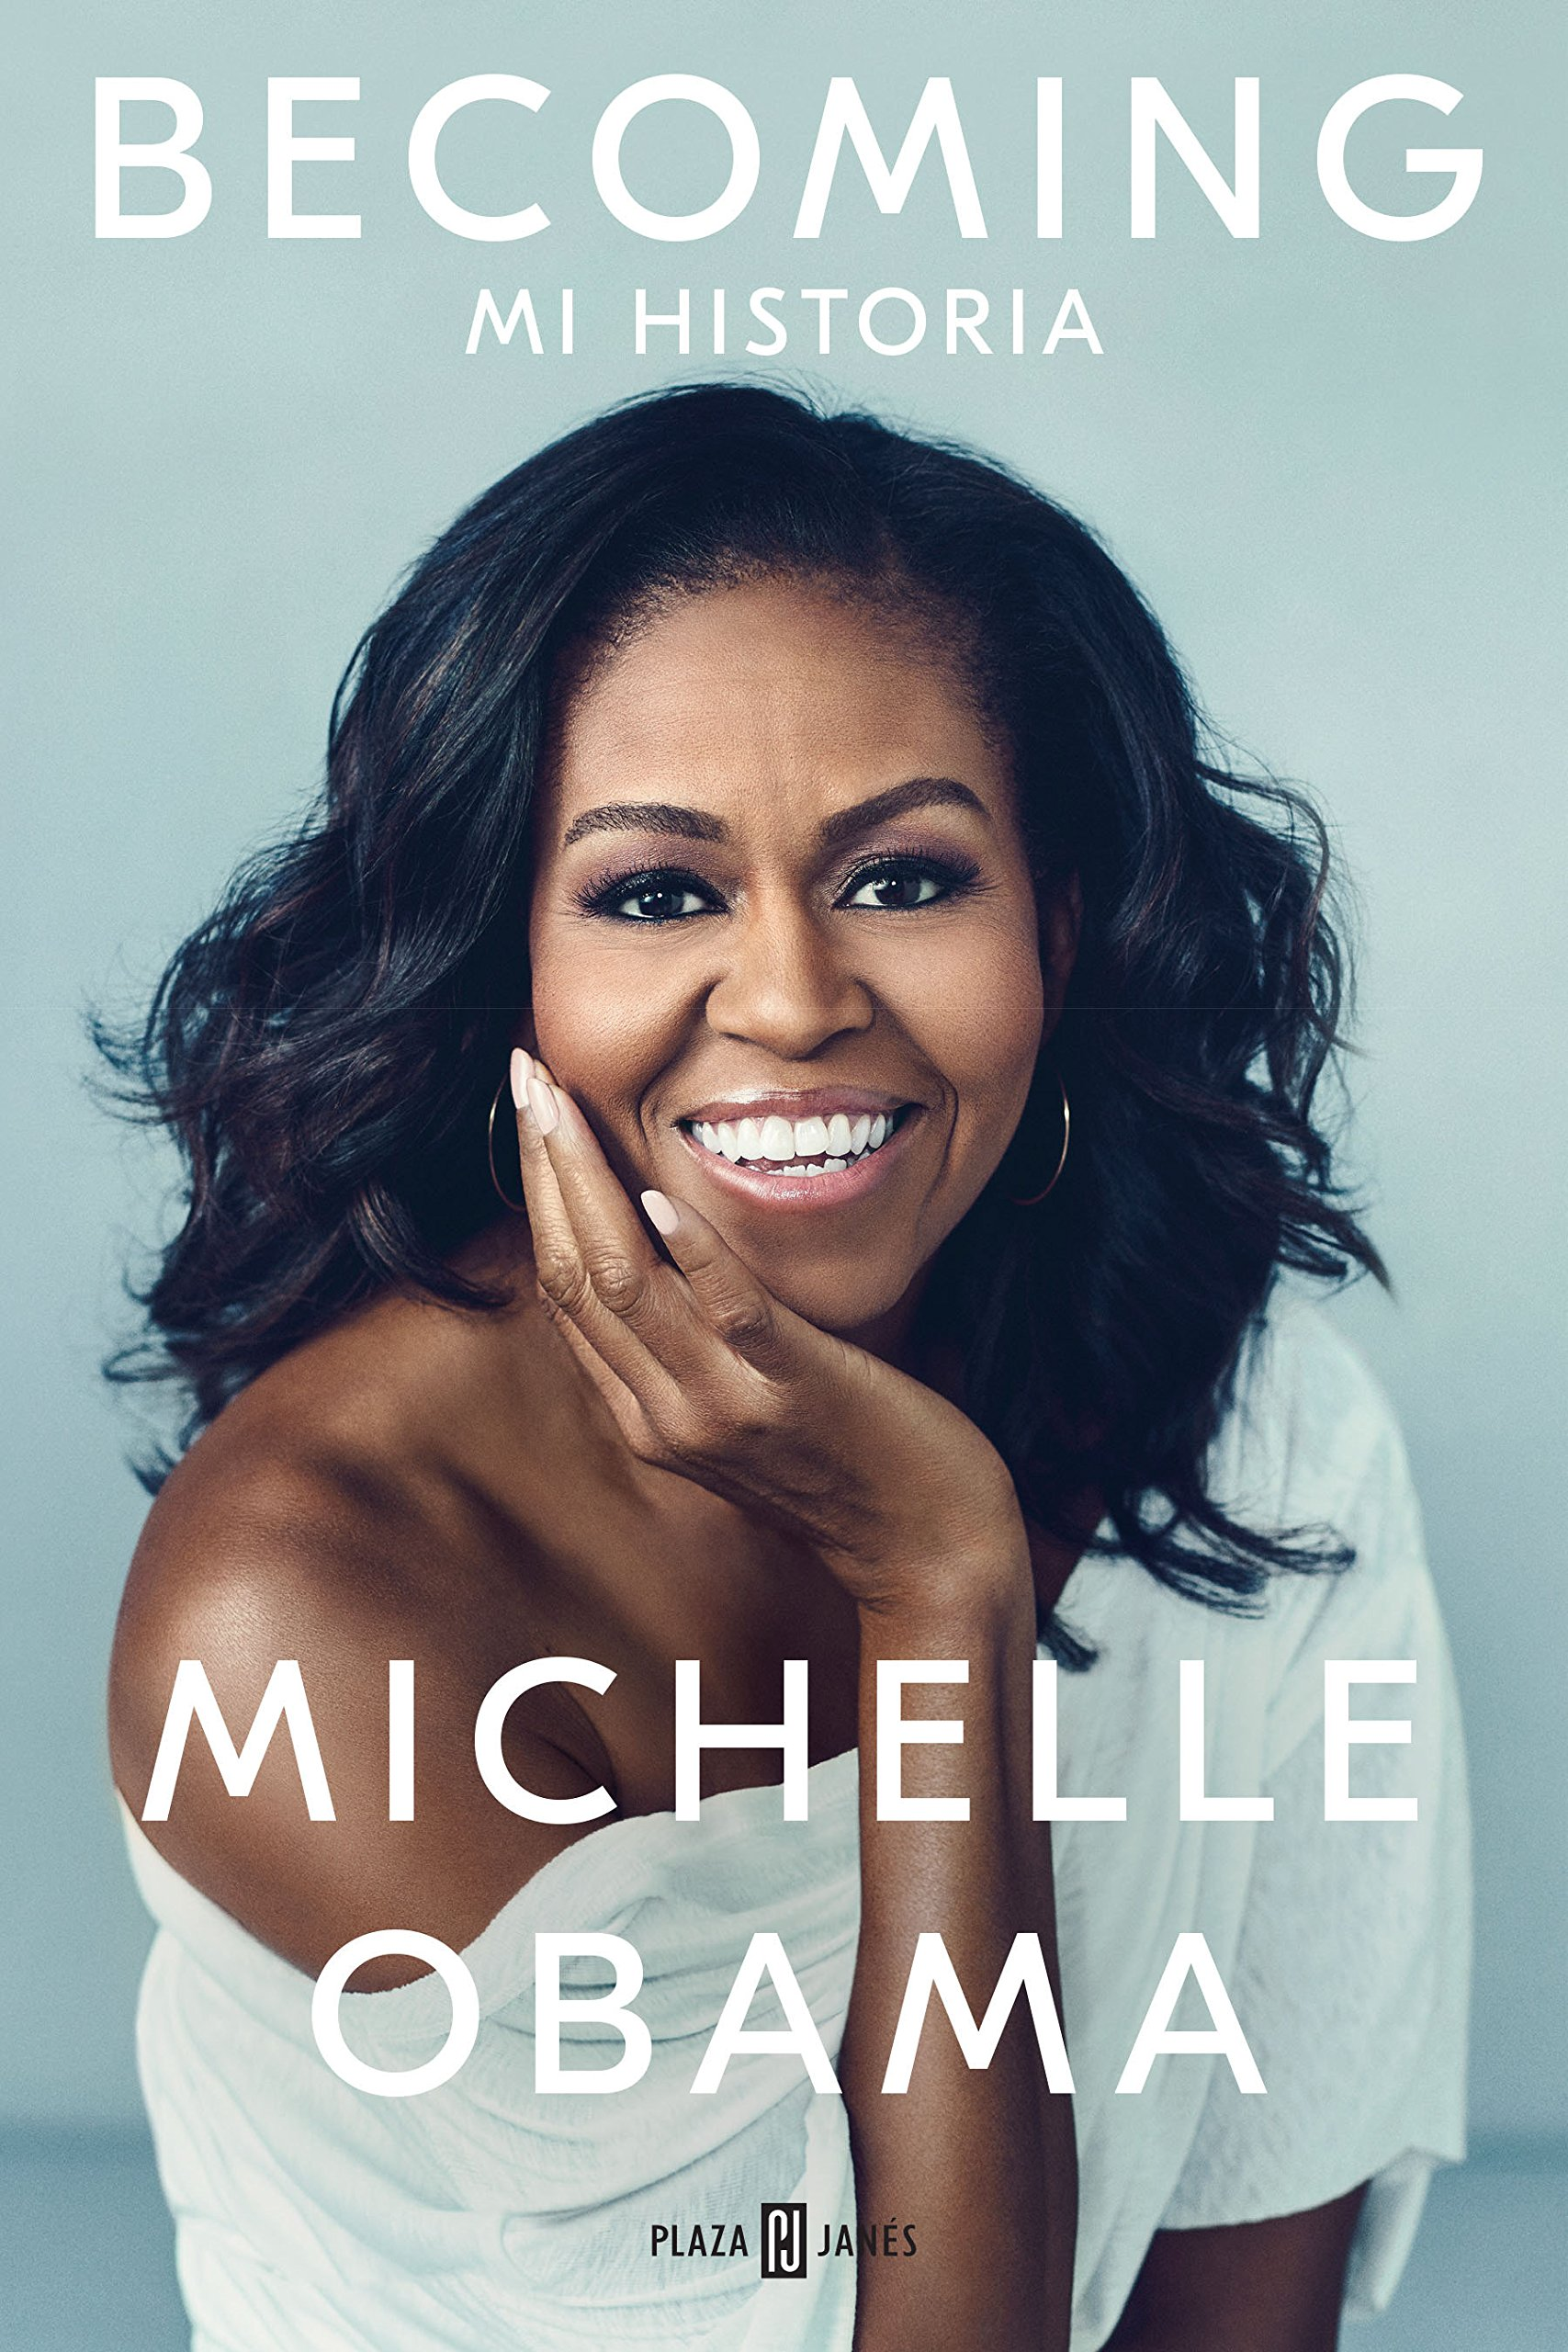 Becoming (Spanish Edition) (Spanish) Paperback – November 13, 2018 Michelle Obama Plaza & Janés 1947783777 African American lawyers